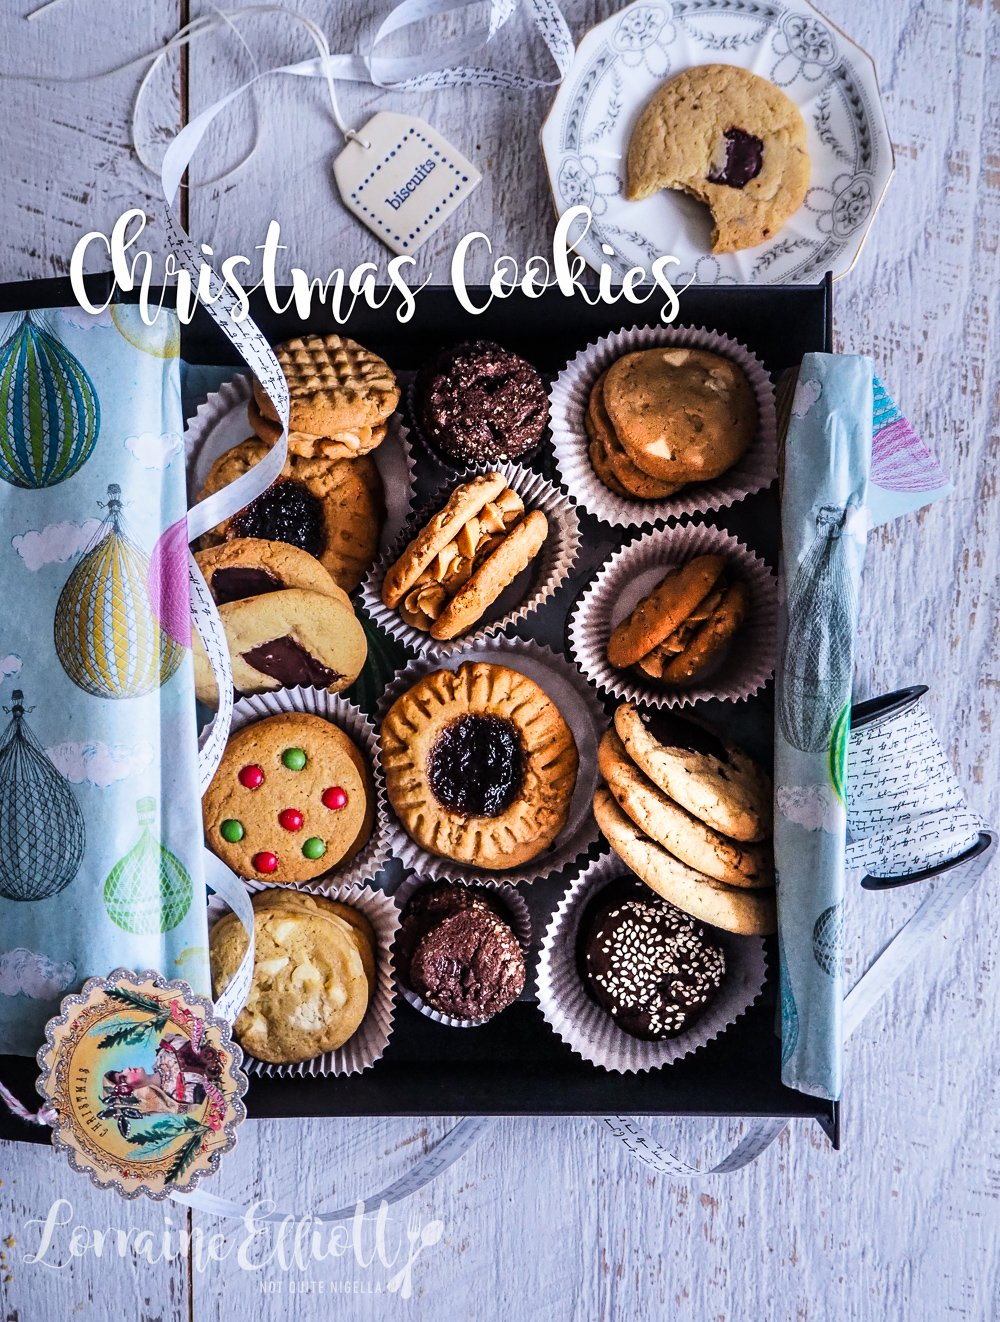 Chewy Crunchy Crisp Soft 8 Christmas Cookies Using 1 Cookie Recipe